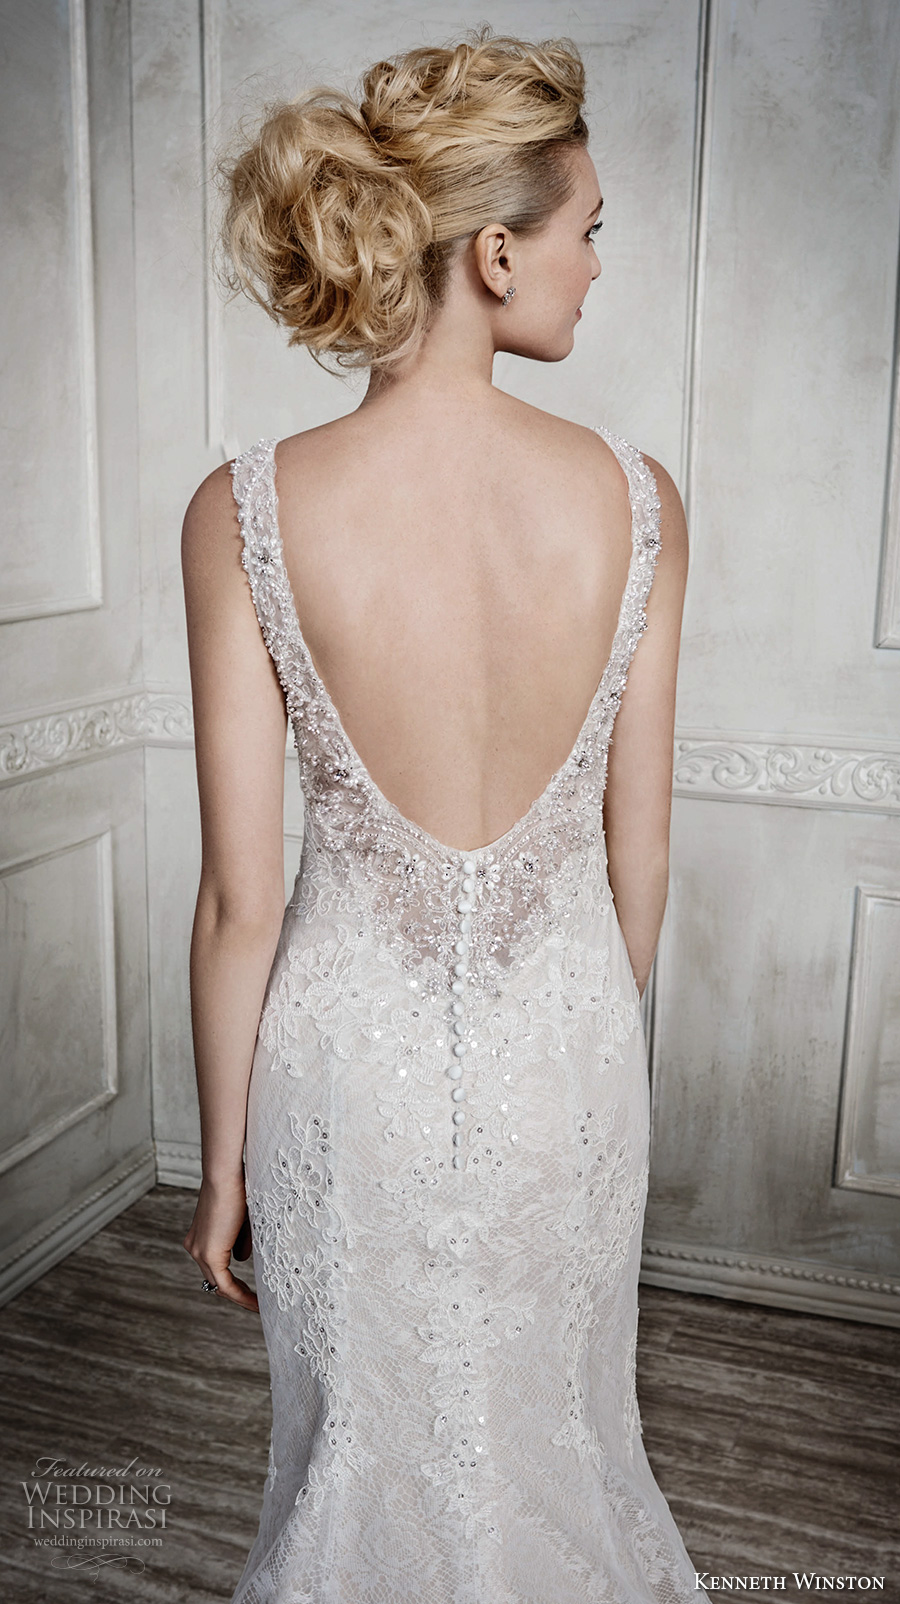 kenneth winston fall 2016 bridal sleeveless embroidered strap sweetheart neckline full embellishment beautiful elegant fit and flare wedding dress low back long train (1670) zbv